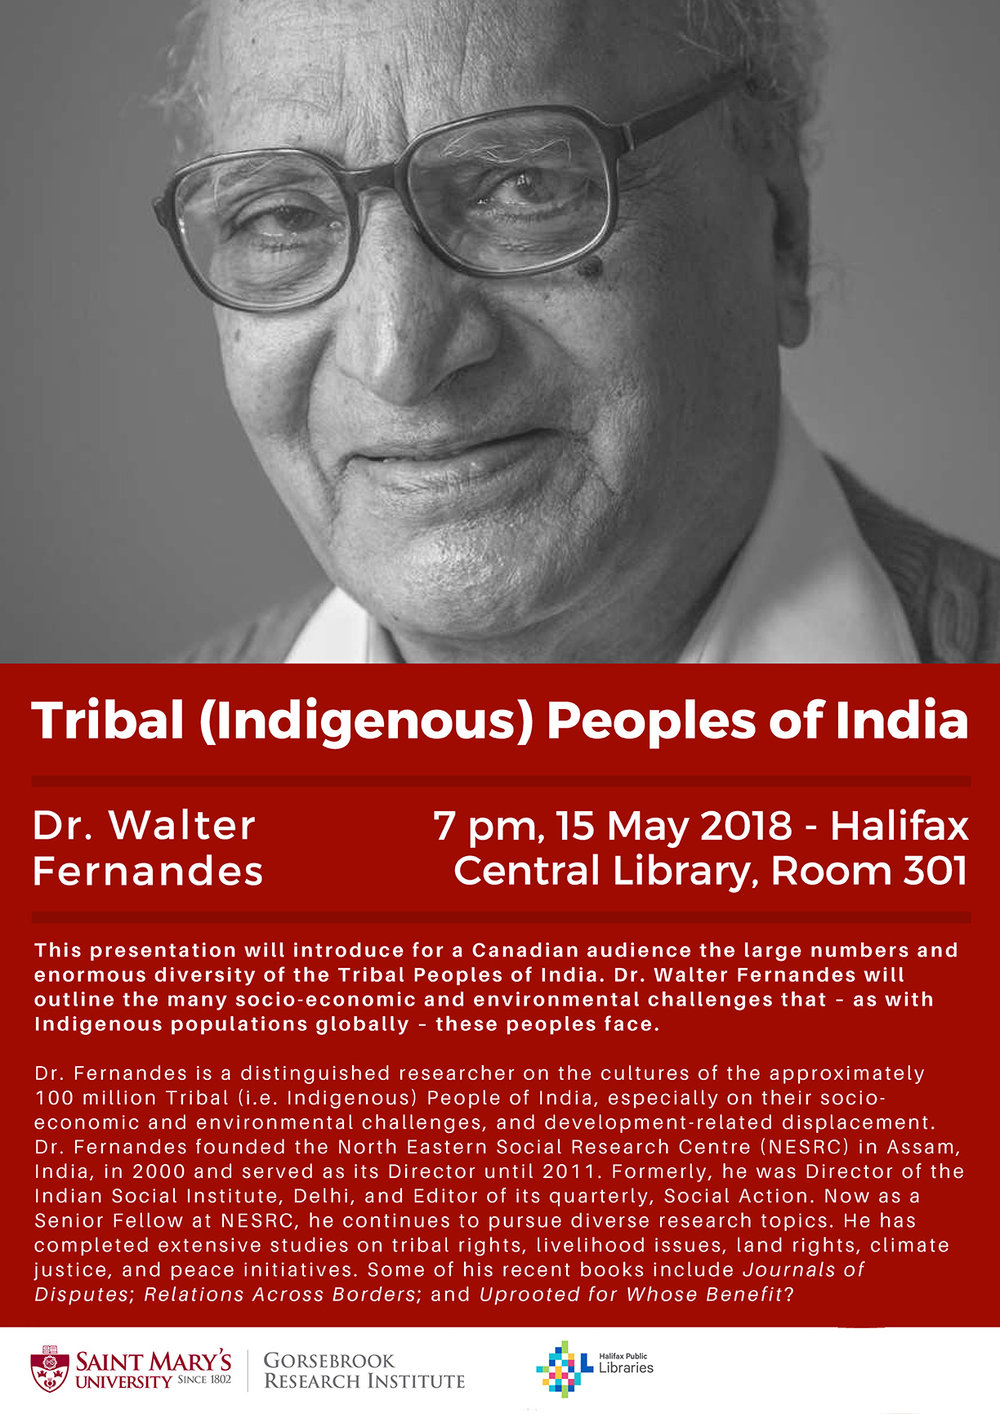 This presentation will introduce for a Canadian audience the large numbers and enormous diversity of the Tribal Peoples of India. Dr. Walter Fernandes will outline the many socio-economic and environmental challenges that - as with Indigenous populations globally - these peoples face.    Dr. Fernandes is a distinguished researcher on the cultures of the approximately 100 million Tribal (i.e. indigenous) people of India, especially on their socio-economic and environmental challenges, and development-related displacement. Dr. Fernandes founded the North Eastern Social Research Centre (NESRC) in Assam, India, in 2000 and served as its Director until 2011. Formerly, he was Director if the Indian Social Institute, Delhi, and Editor of its quarterly, Social Action. Now as a Senior Fellow at NESRC, he continues to pursue diverse research topics. He has completed extensive studies on tribal rights, livelihood issues, land rights, climate justice, and peace initiatives. some of his recent books include  Journals of Disputes ;  Relations Across Borders ; and  Uprooted for Whose Benefit .